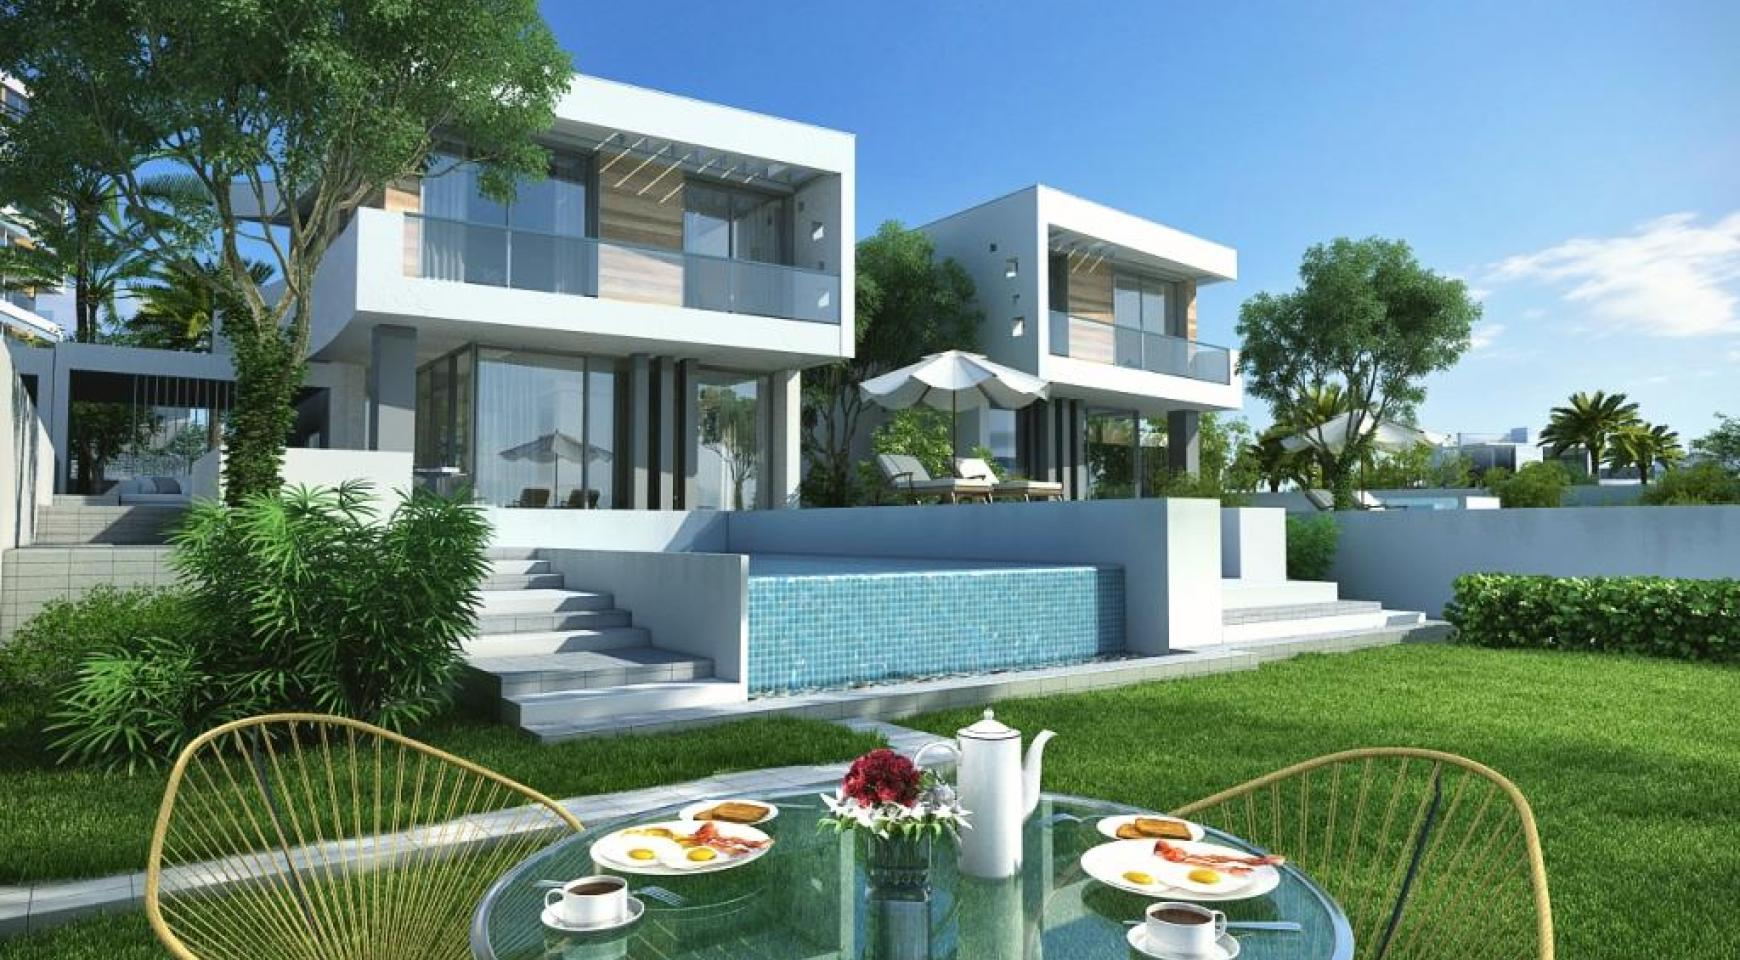 Contemporary 4 Bedroom Villa in a New Project by the Sea - 5